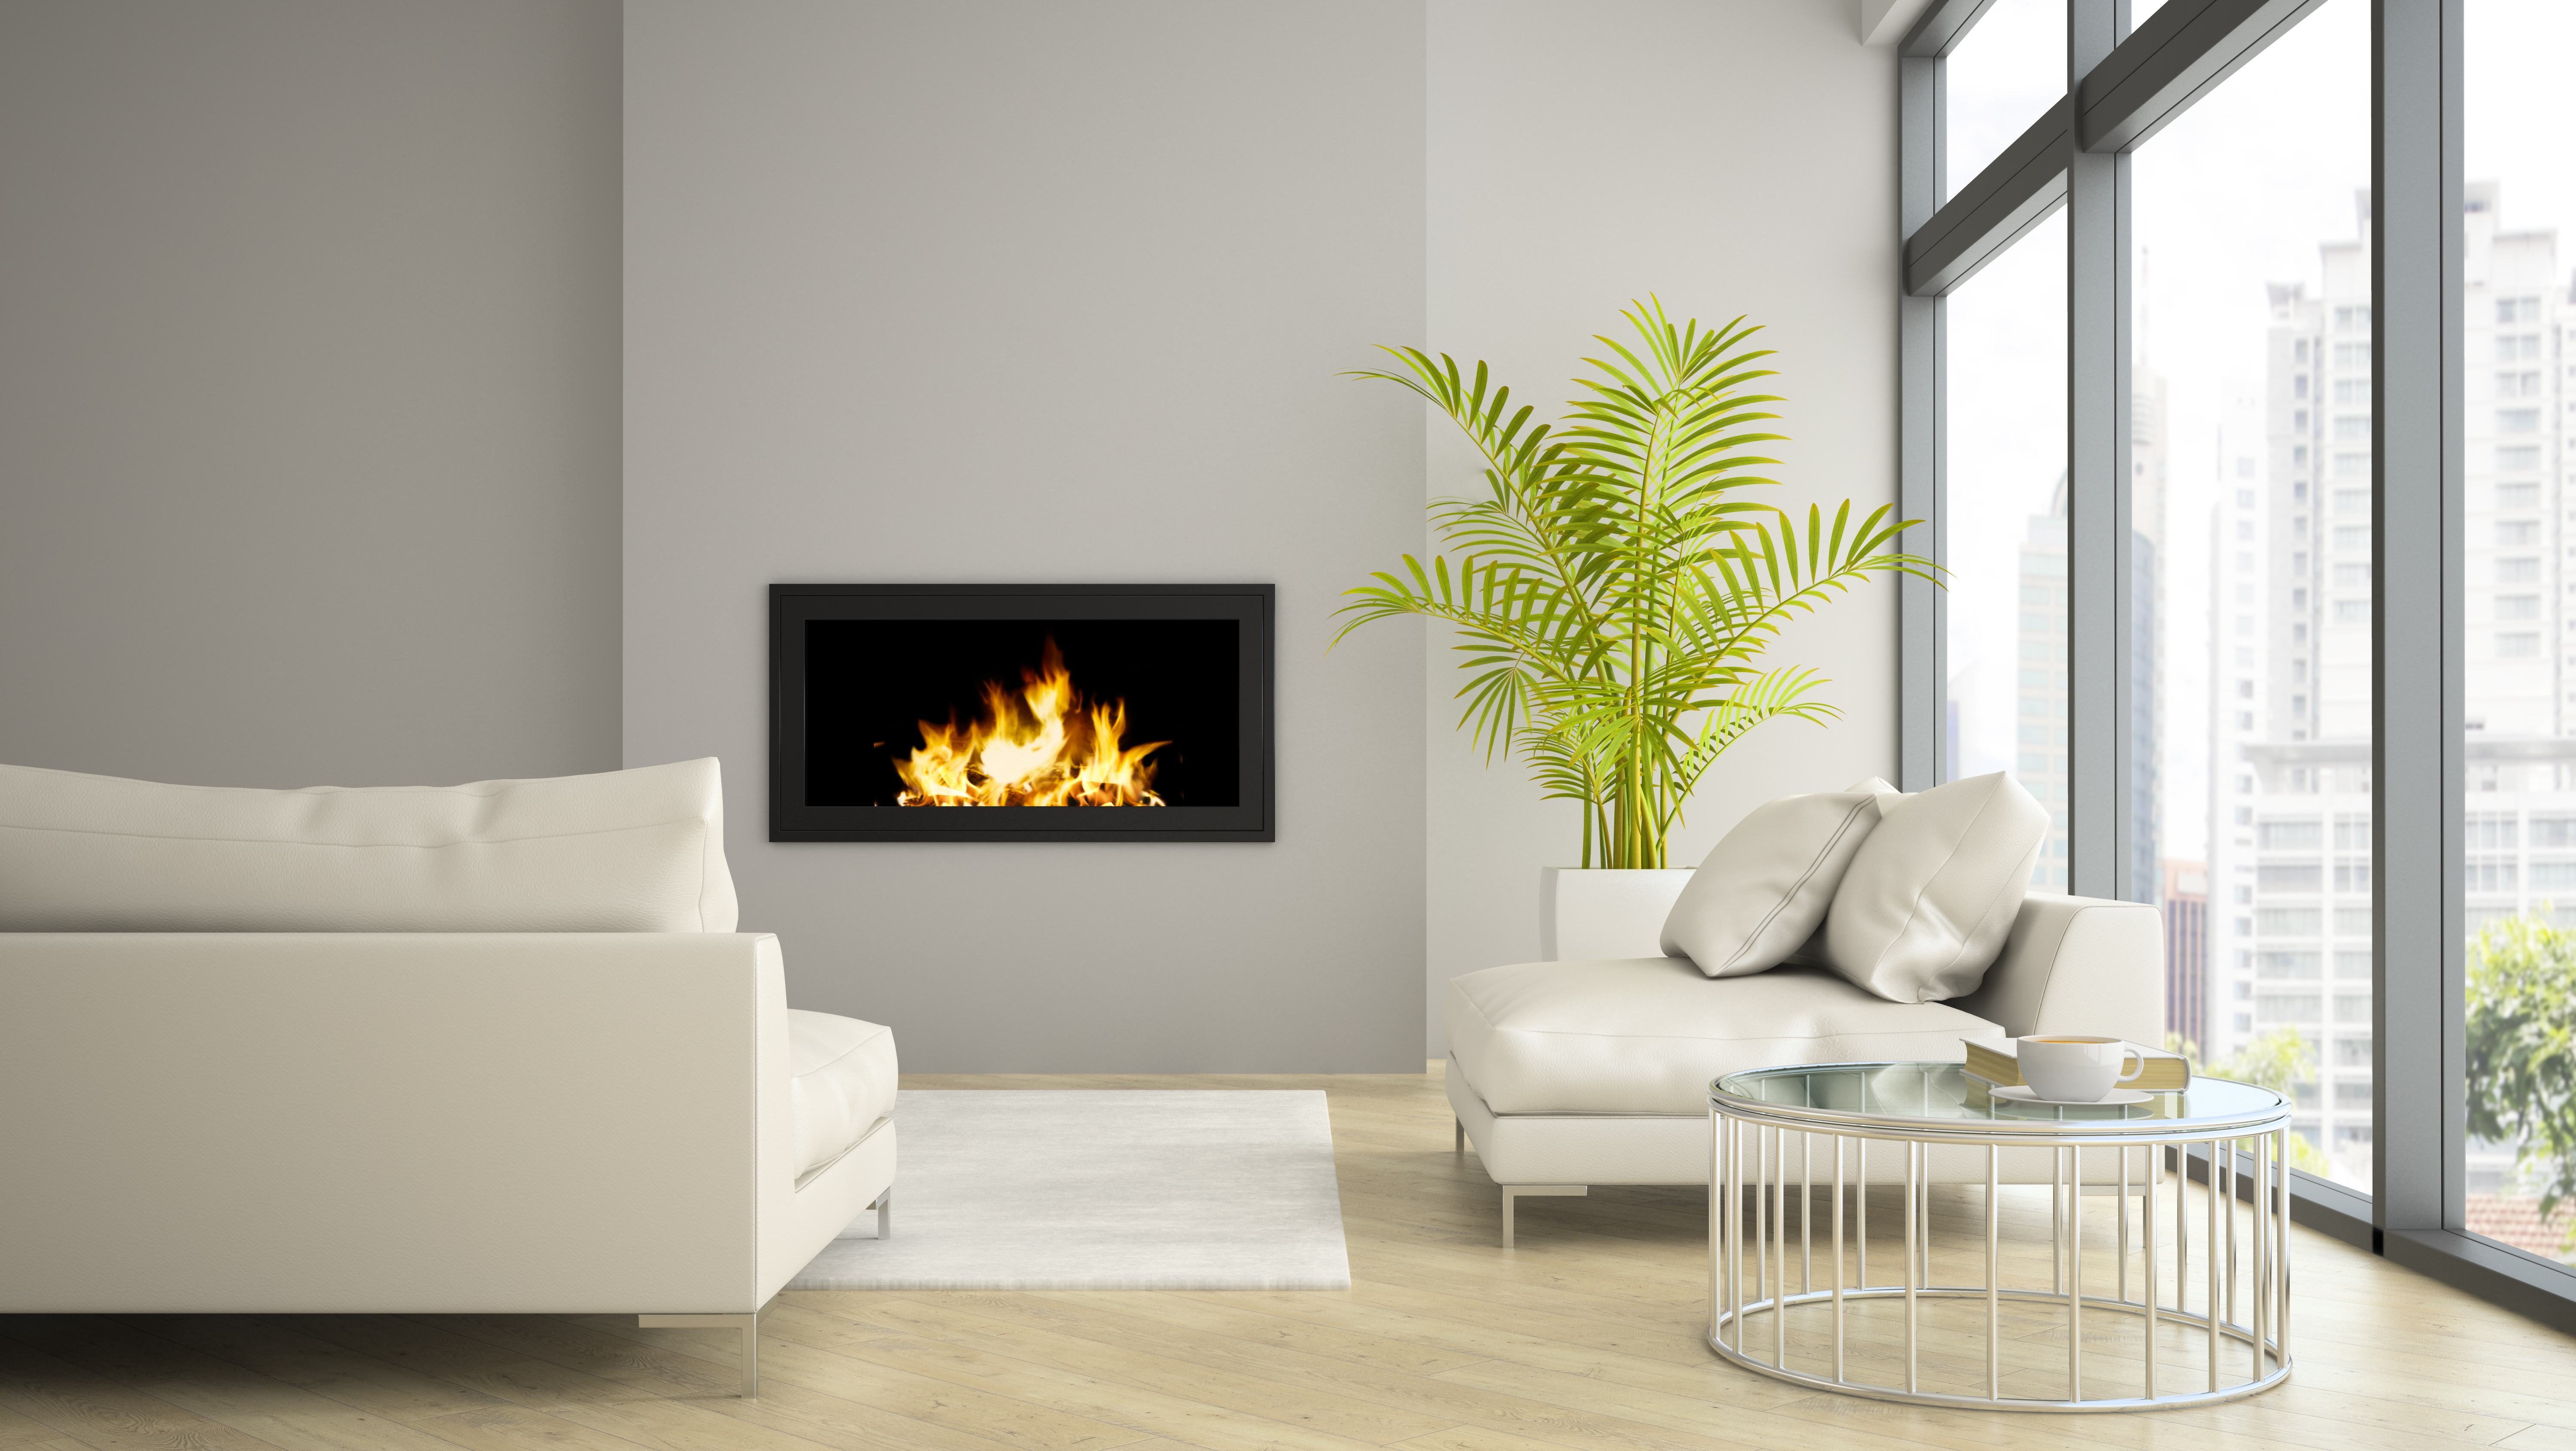 Gas Fireplace Repair: Do-It-Yourself Troubleshooting - Advice